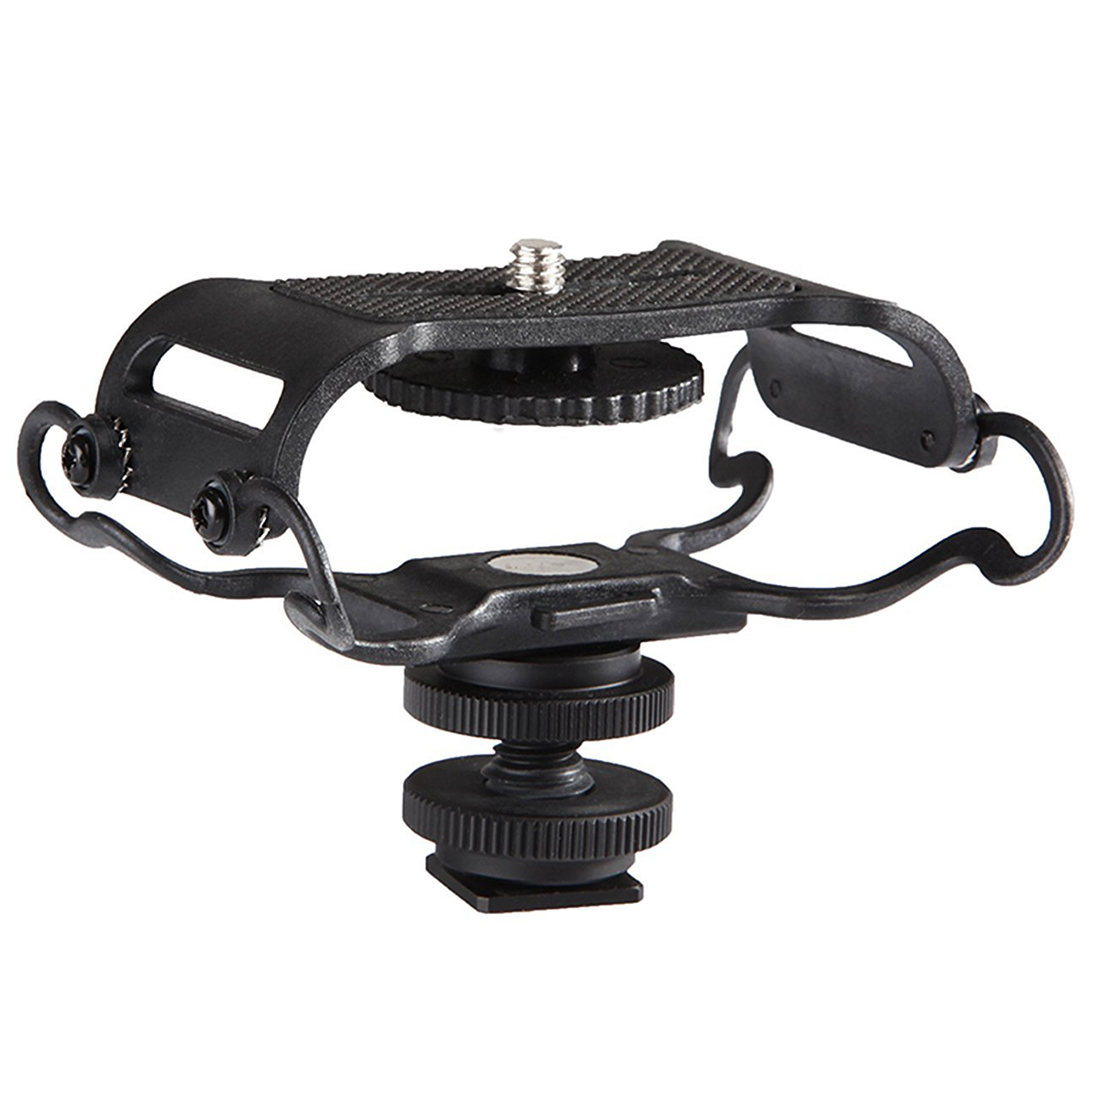 TTKK Microphone and Portable Recorder Shock Mount - Fits the Zoom H4n, H5, H6, Tascam DR-40, DR-05, DR-07